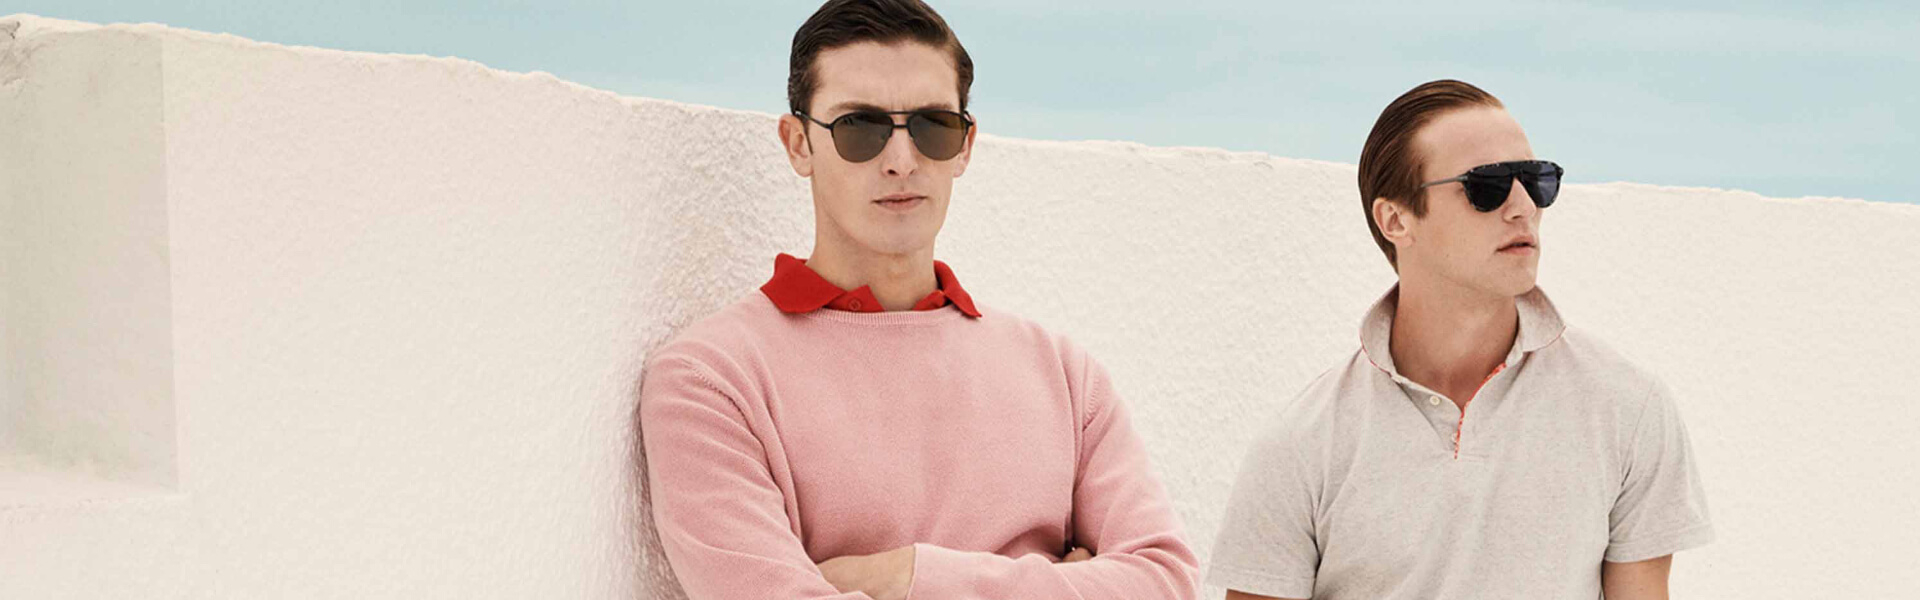 hackett sunglasses